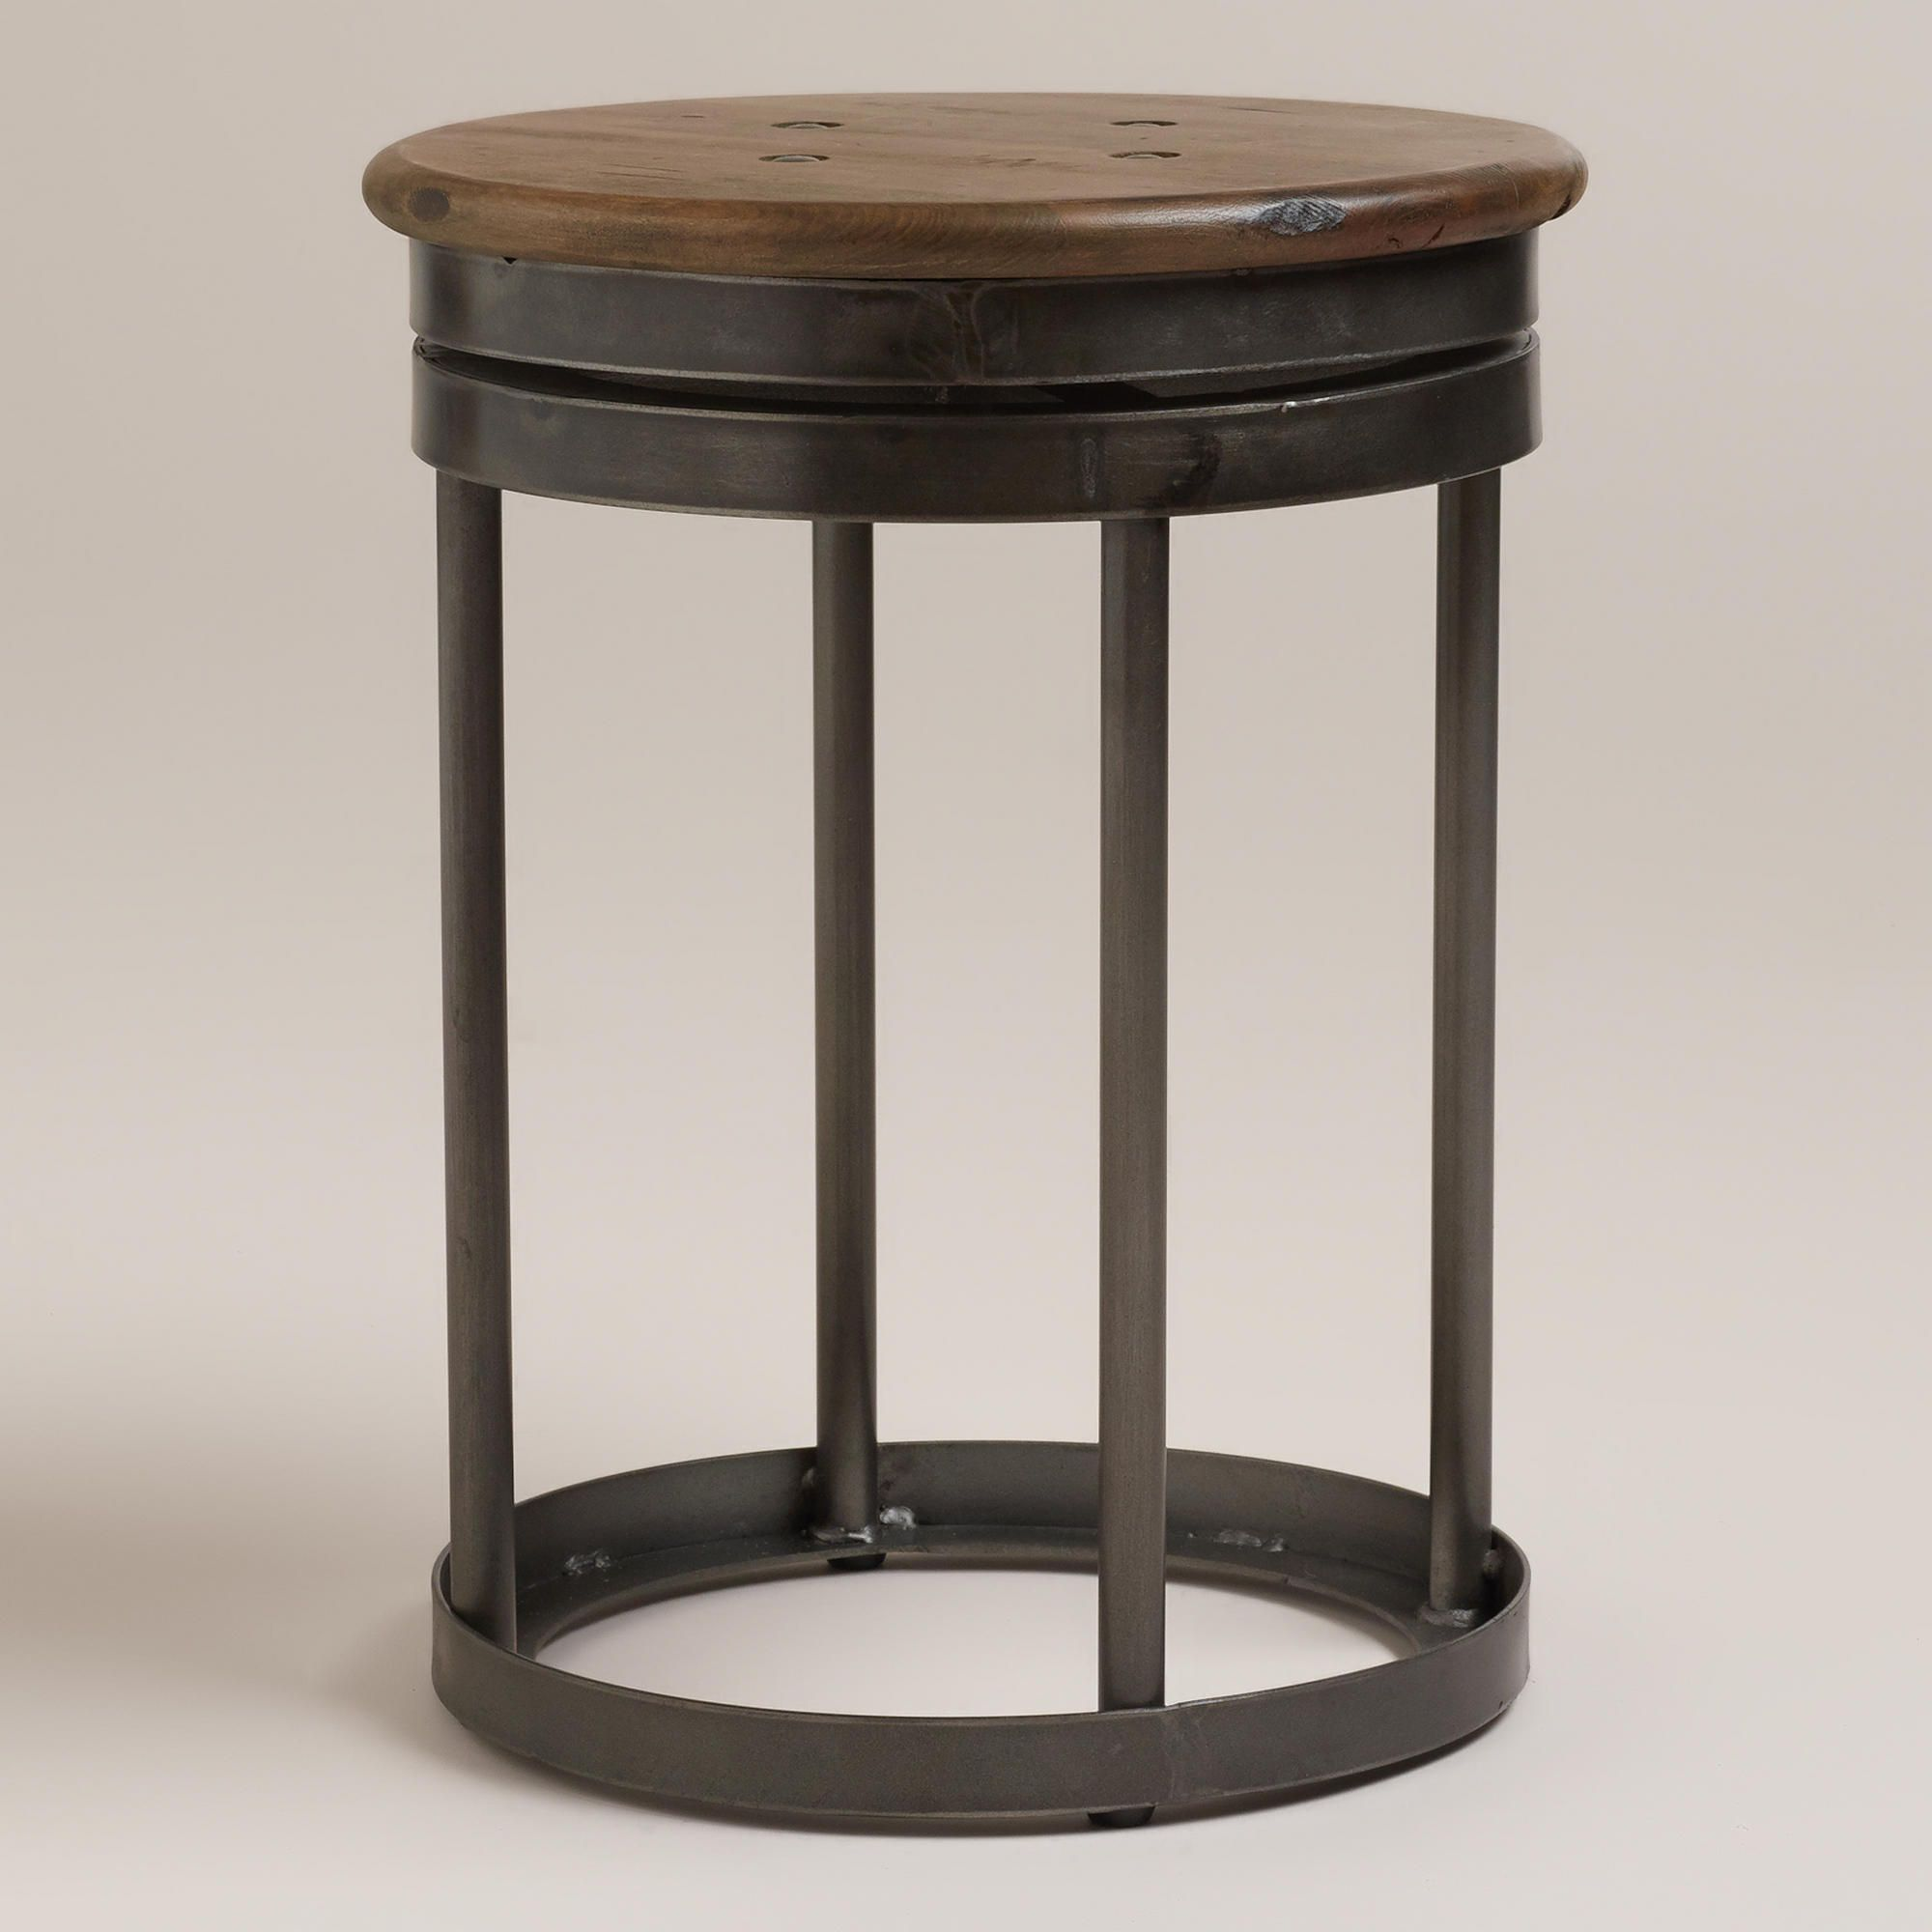 End table/stools | Tasting room designs | Pinterest